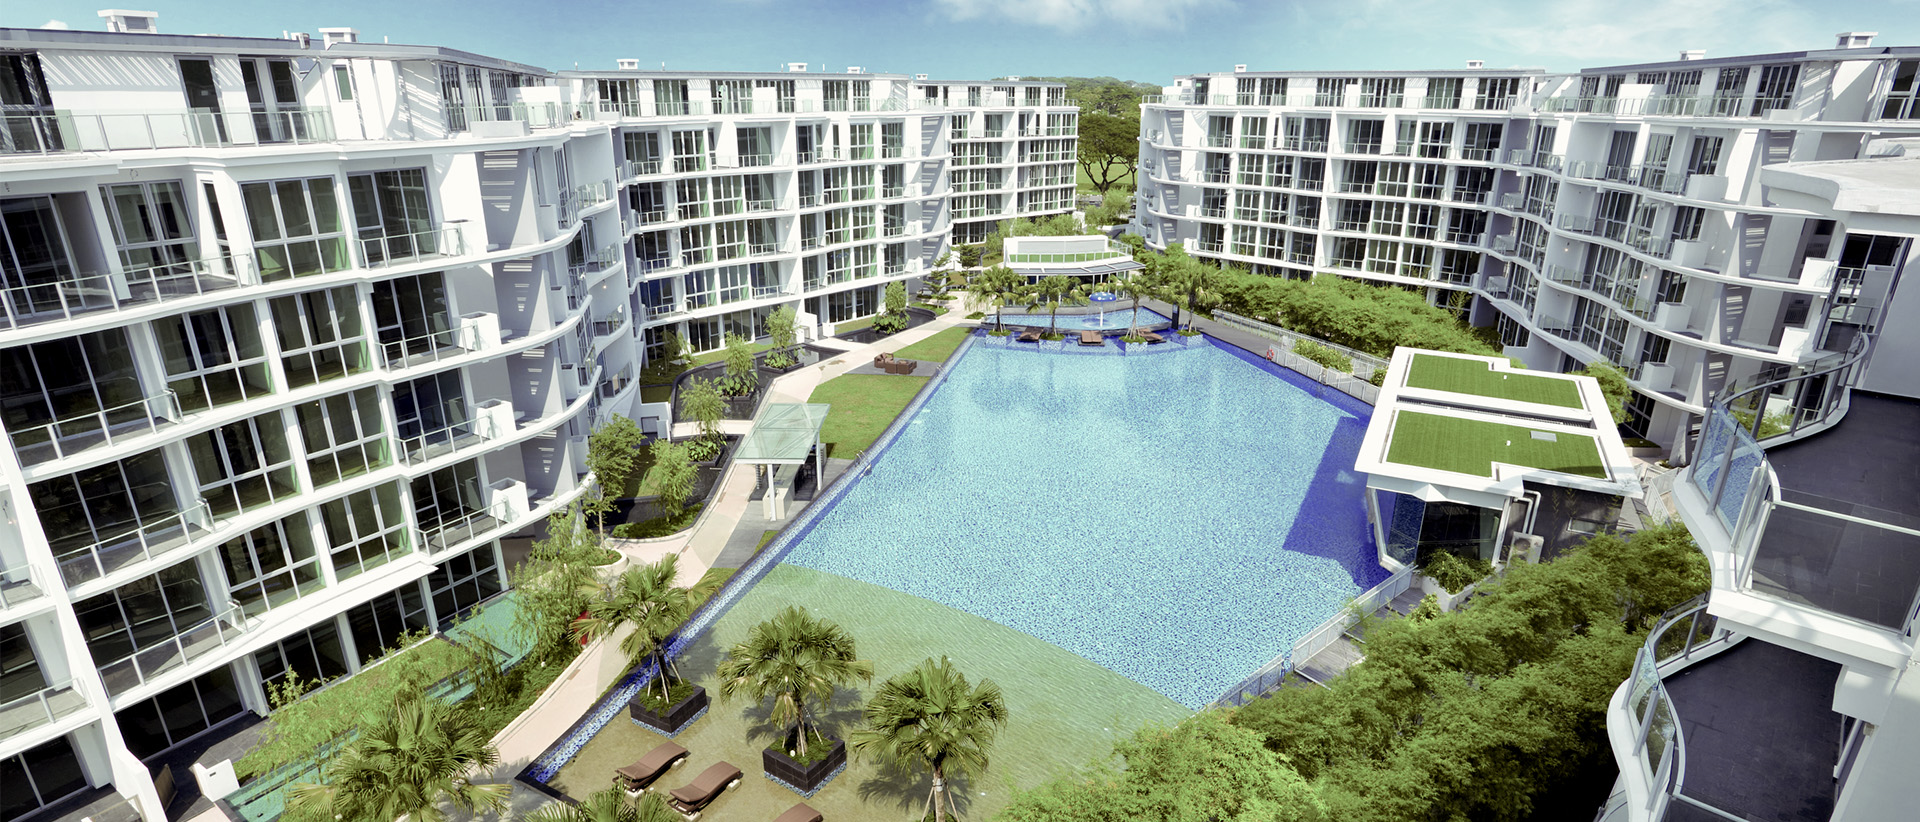 One-Bernam-developer-track-record-Canberra-Residences